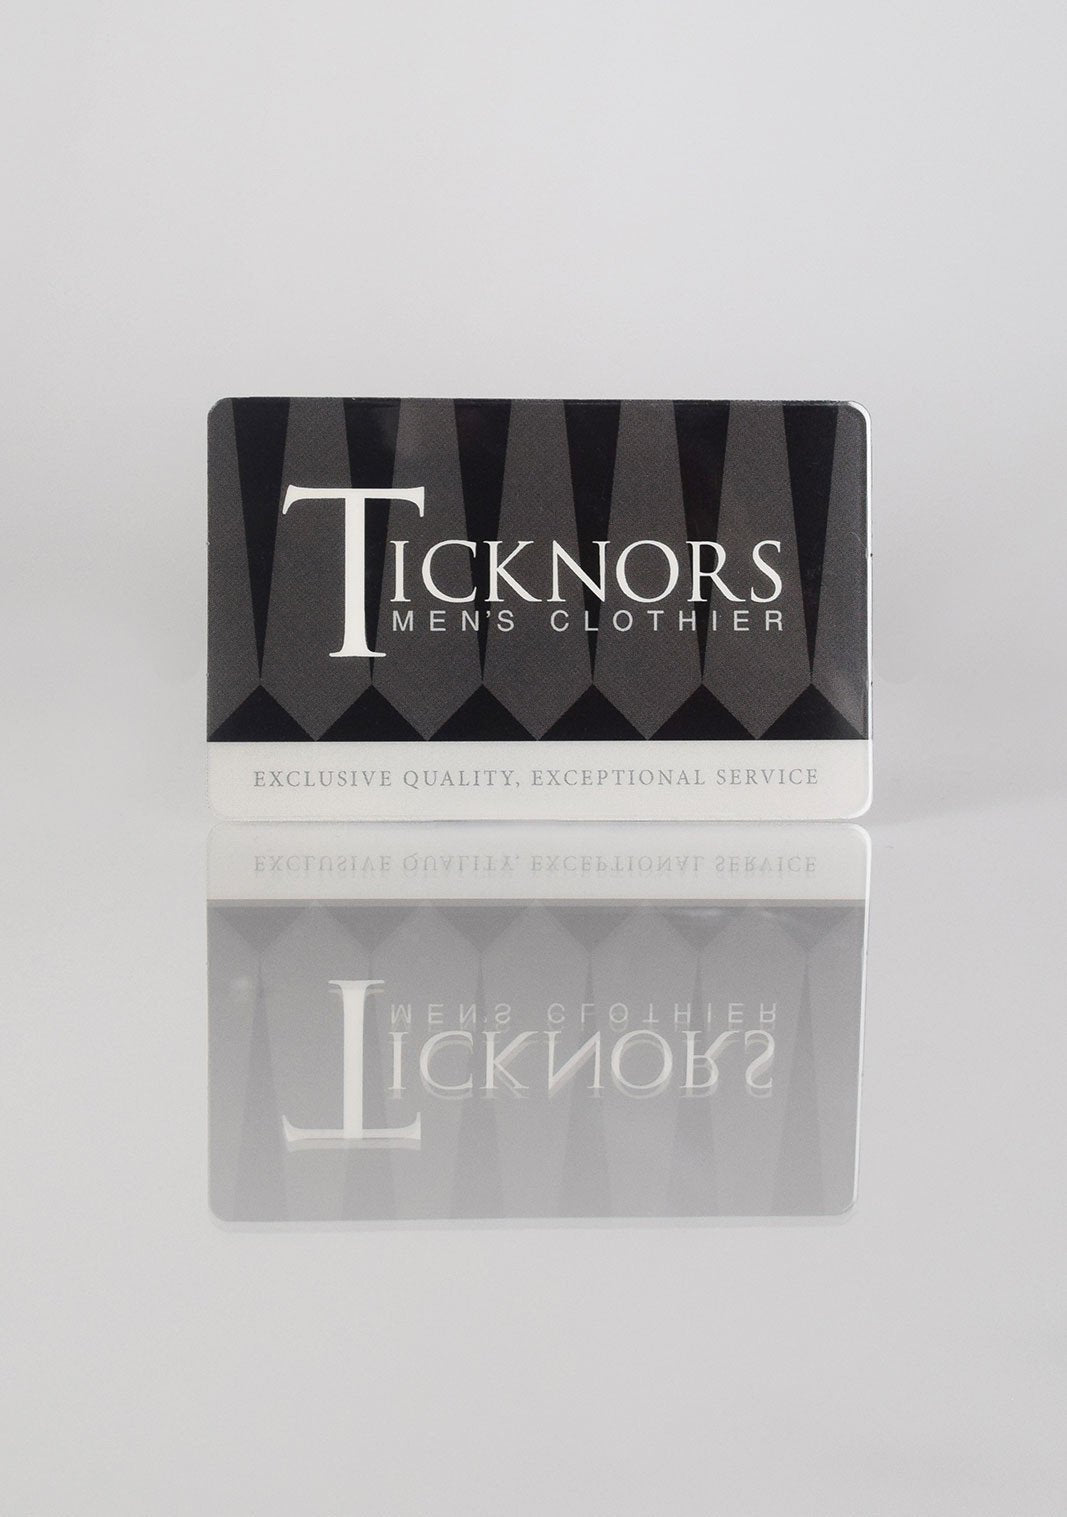 Ticknors Gift Card